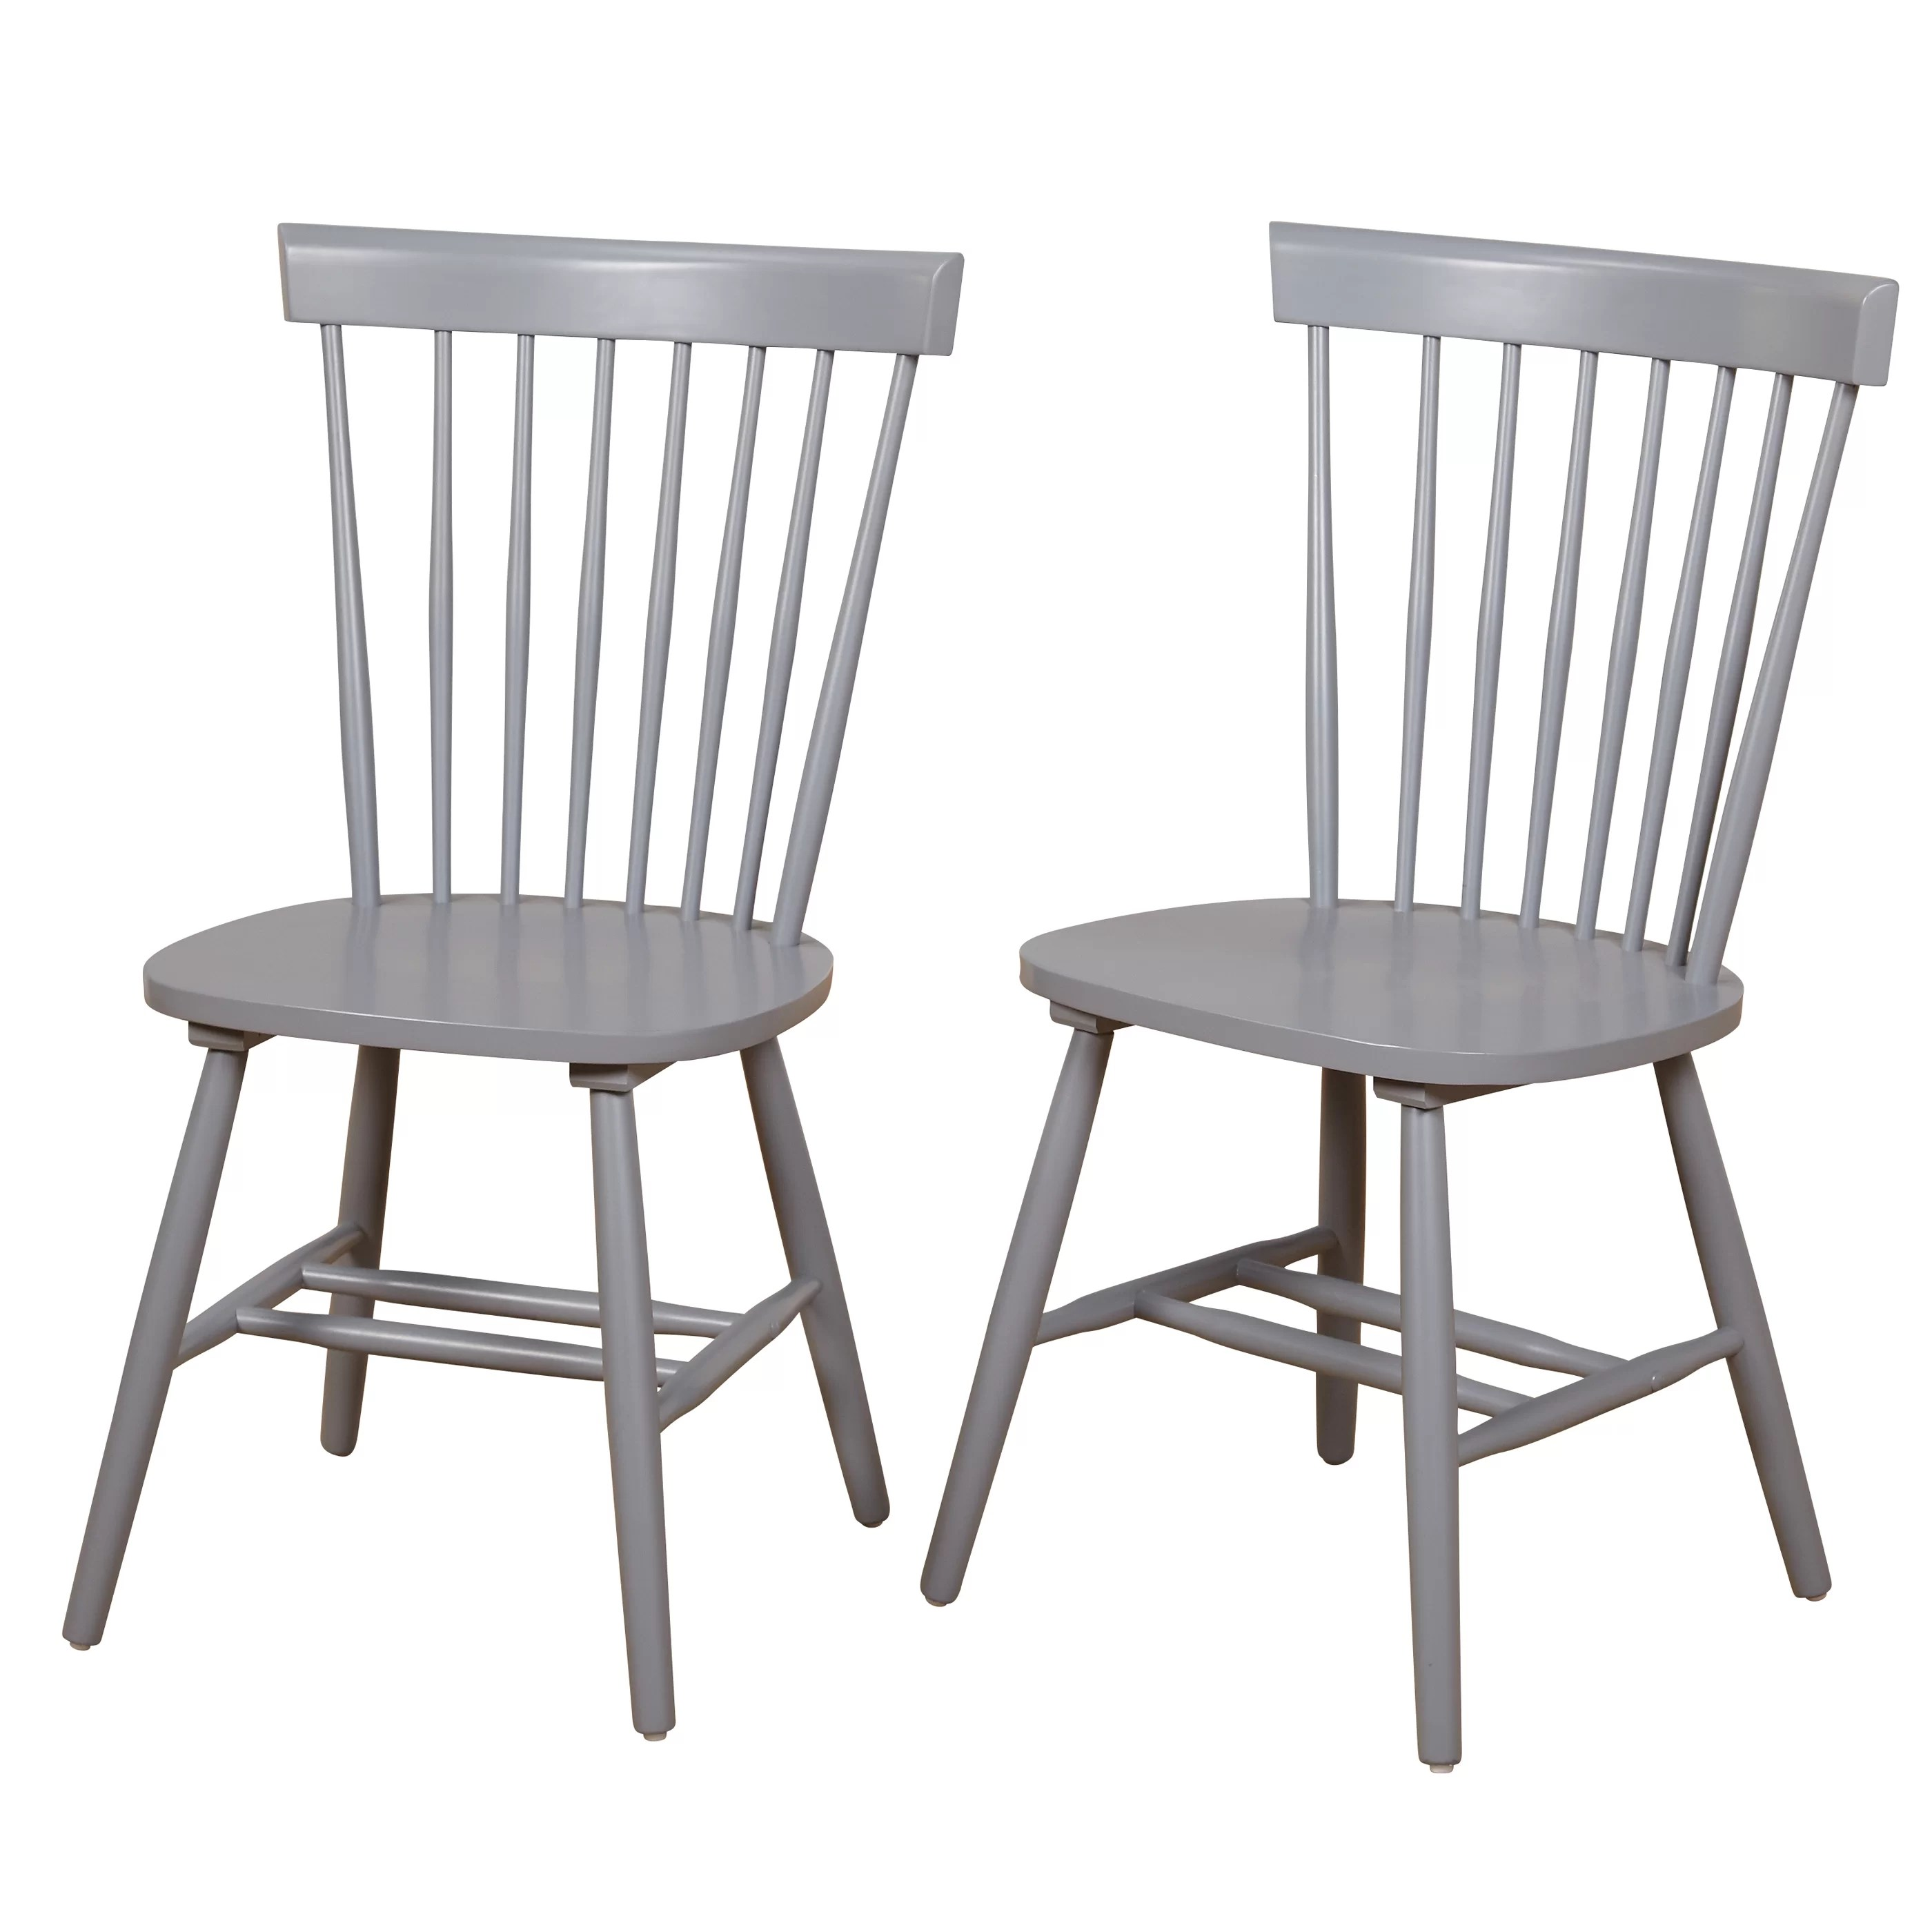 White Wooden Dining Chairs Beachcrest Home Royal Palm Beach Solid Wood Dining Chair